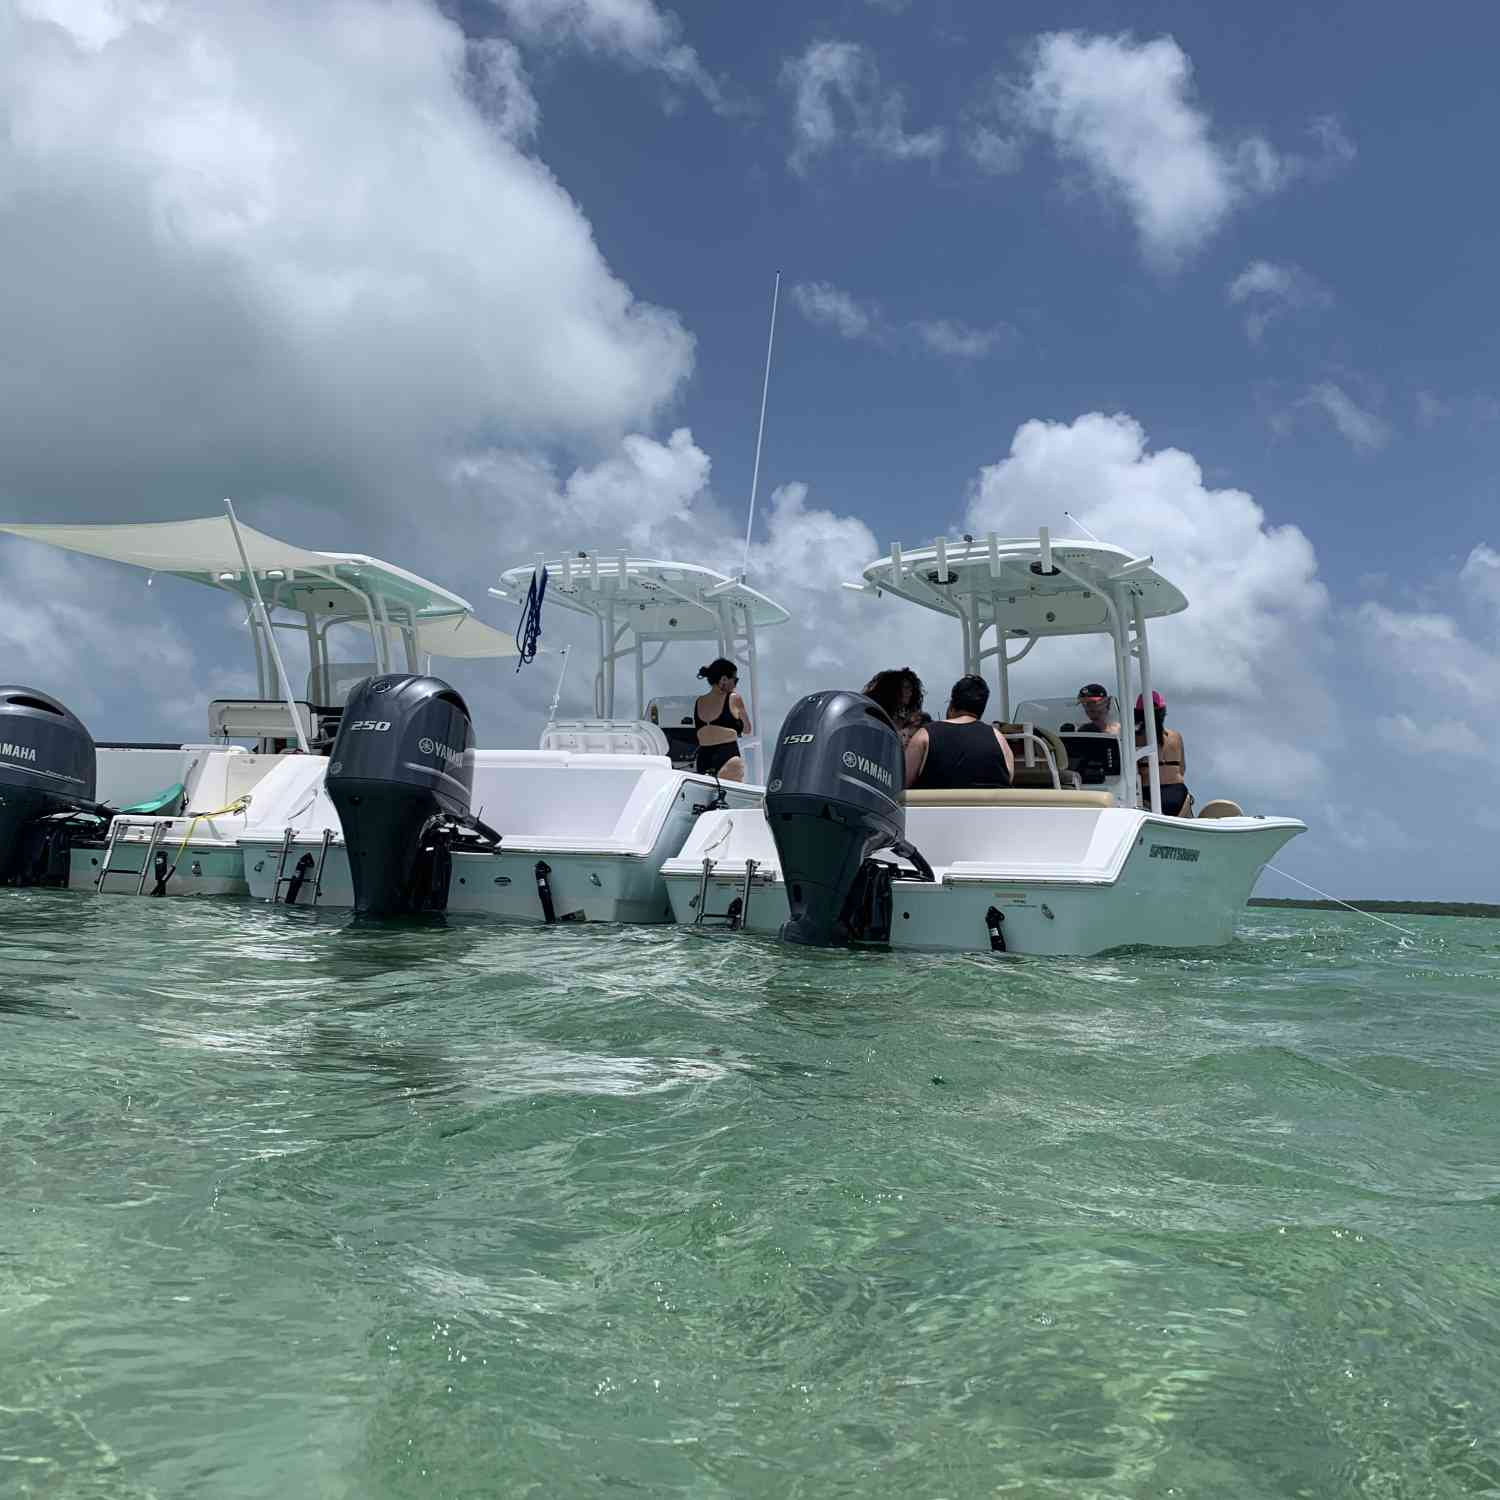 Title: The calm before the storm - On board their Sportsman Heritage 231 Center Console - Location: Elliot key. Participating in the Photo Contest #SportsmanAugust2020